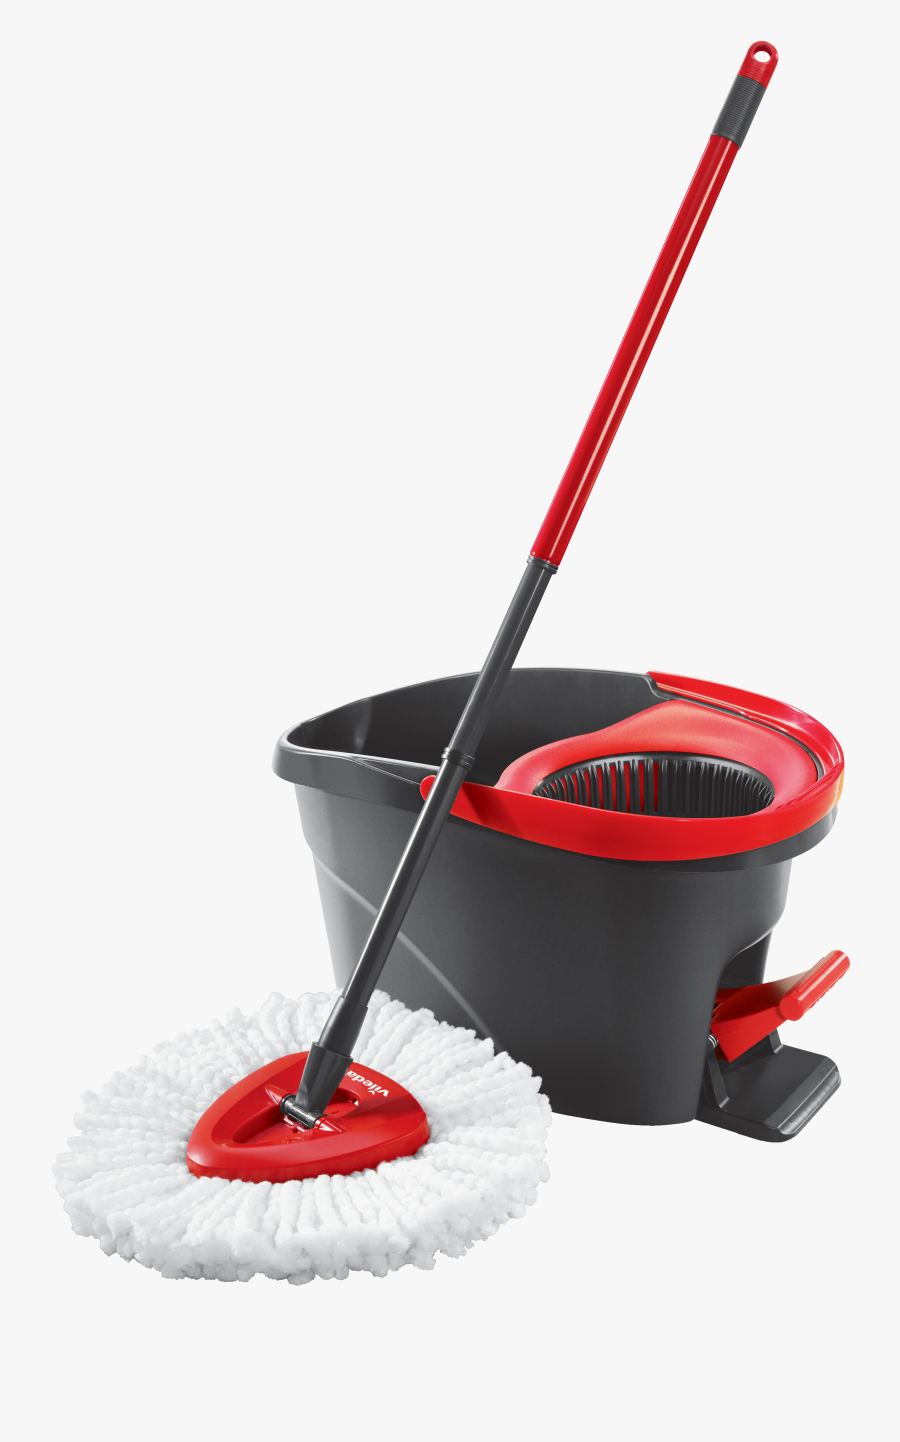 Mop Png - Spin Mop Ace Hardware, Transparent Clipart